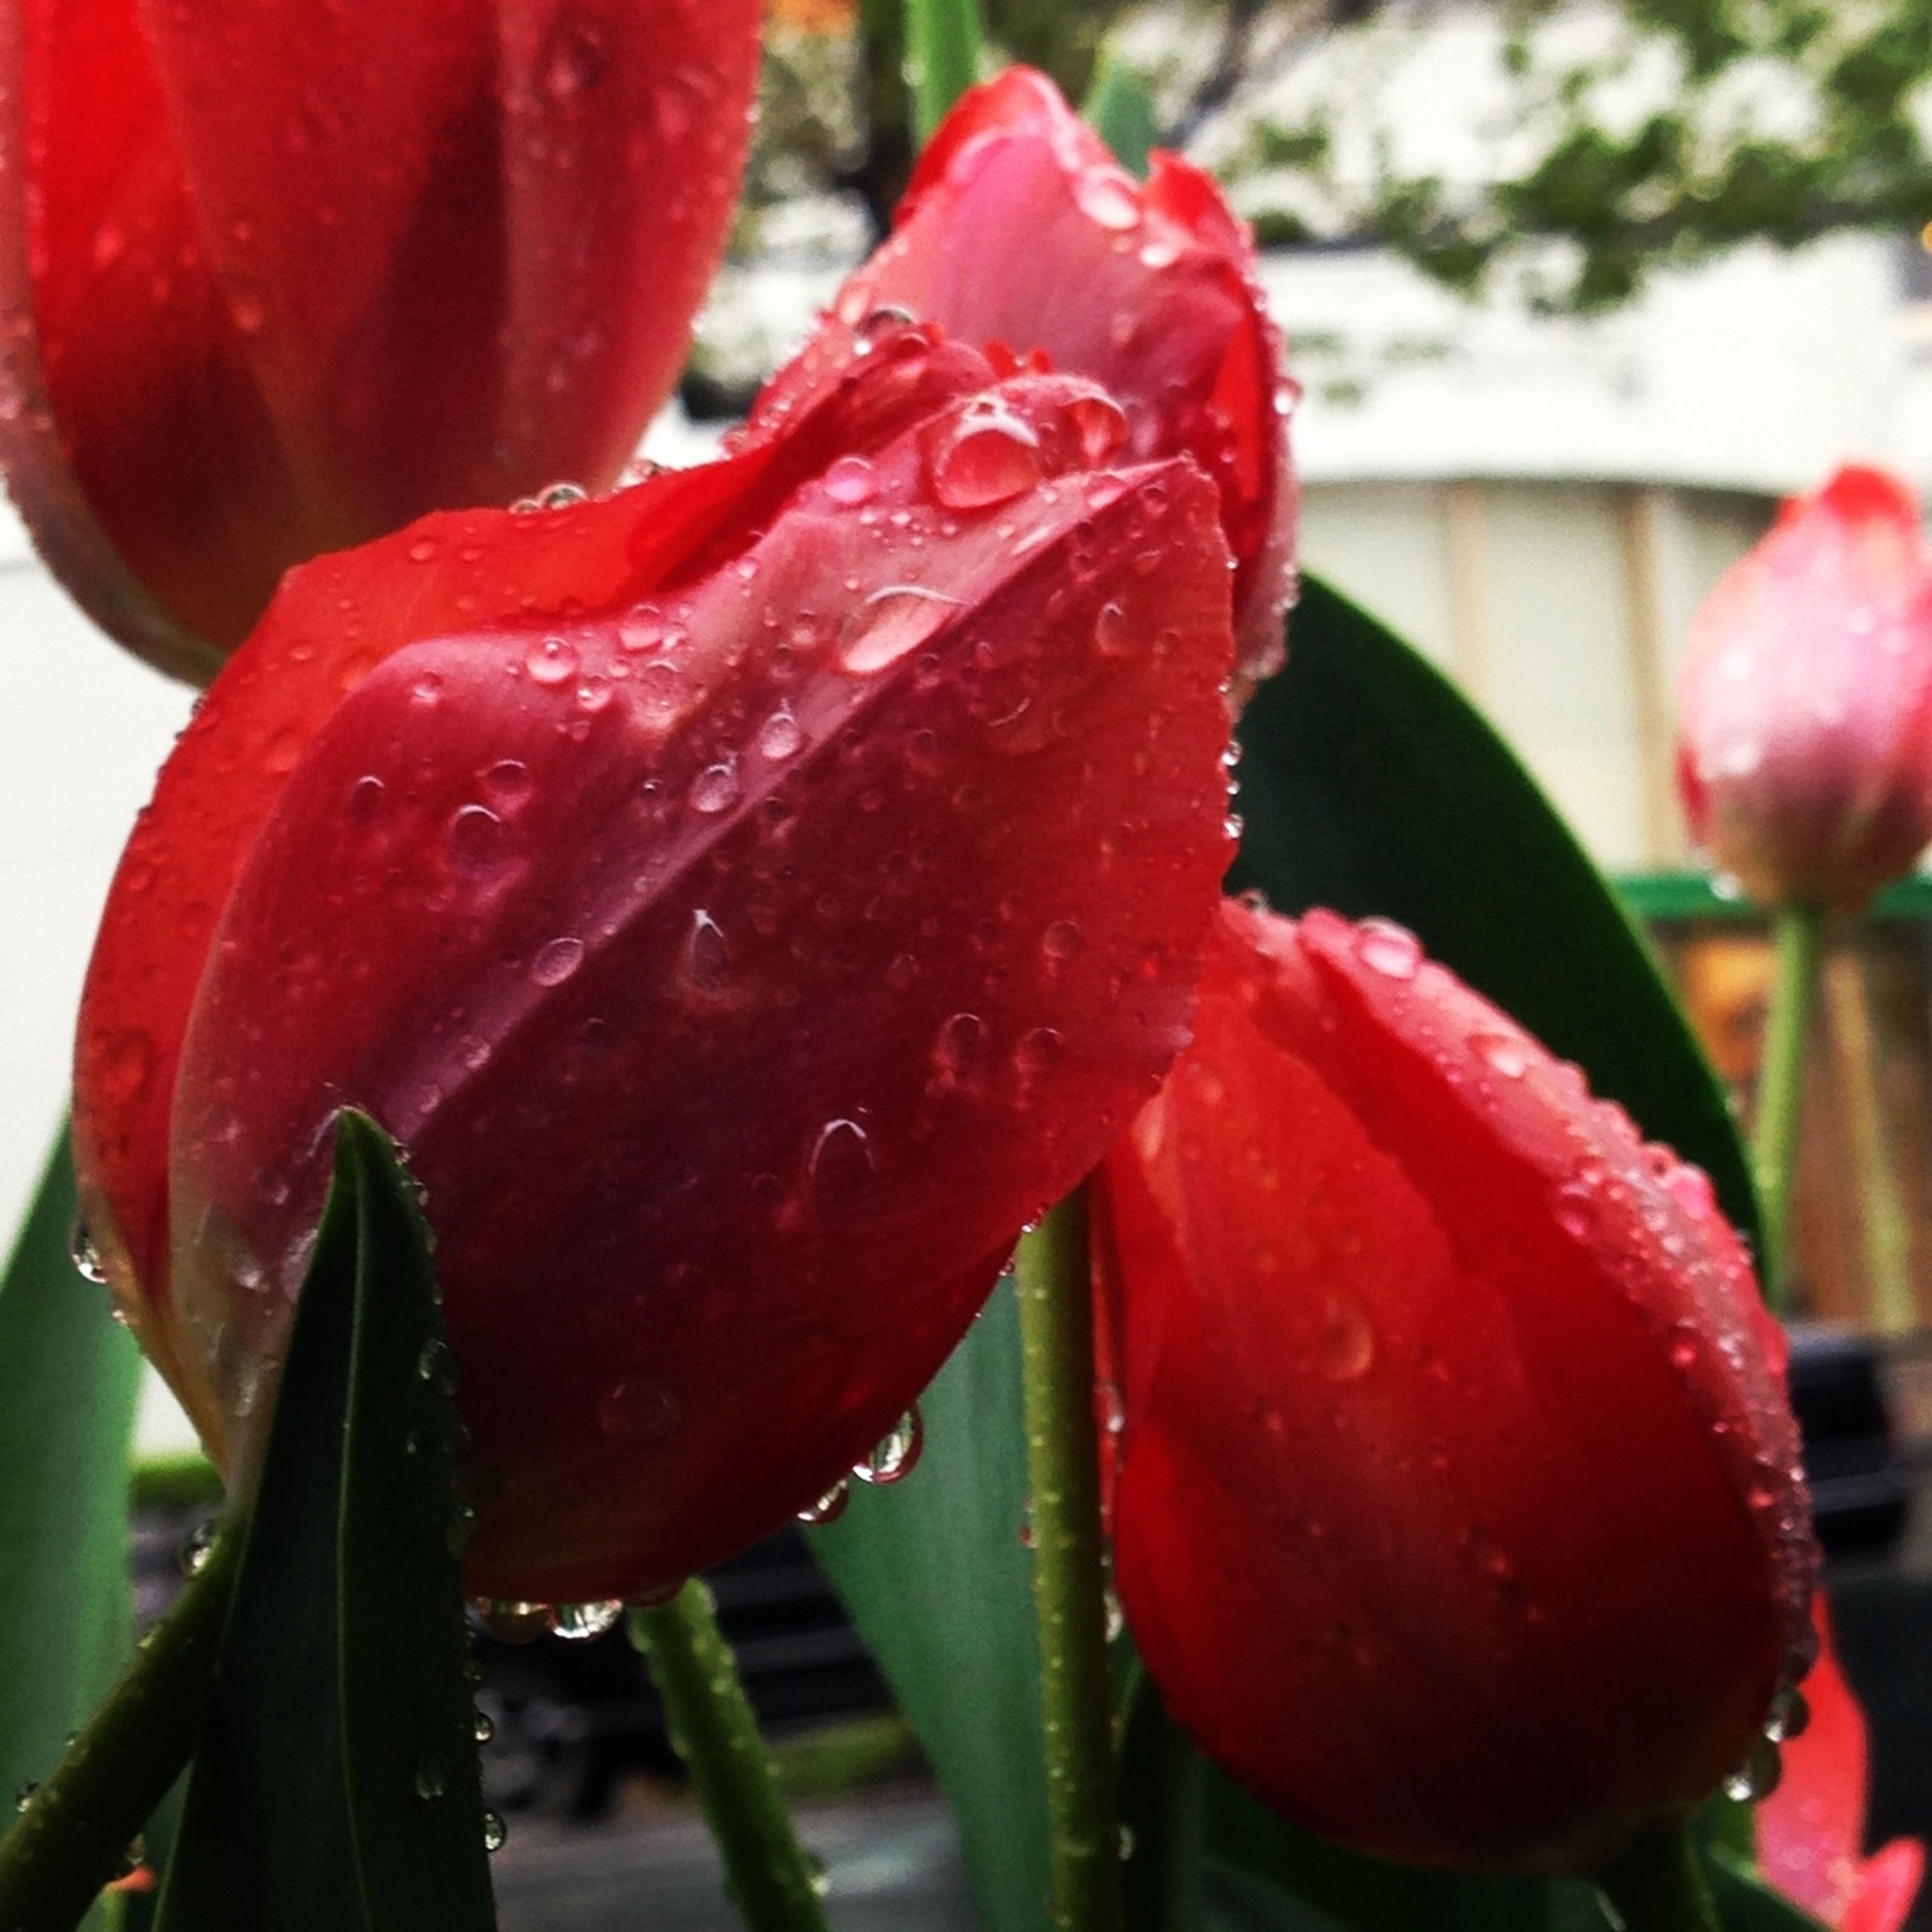 flower, freshness, petal, drop, flower head, growth, fragility, close-up, water, beauty in nature, wet, focus on foreground, nature, red, plant, dew, blooming, single flower, in bloom, tulip